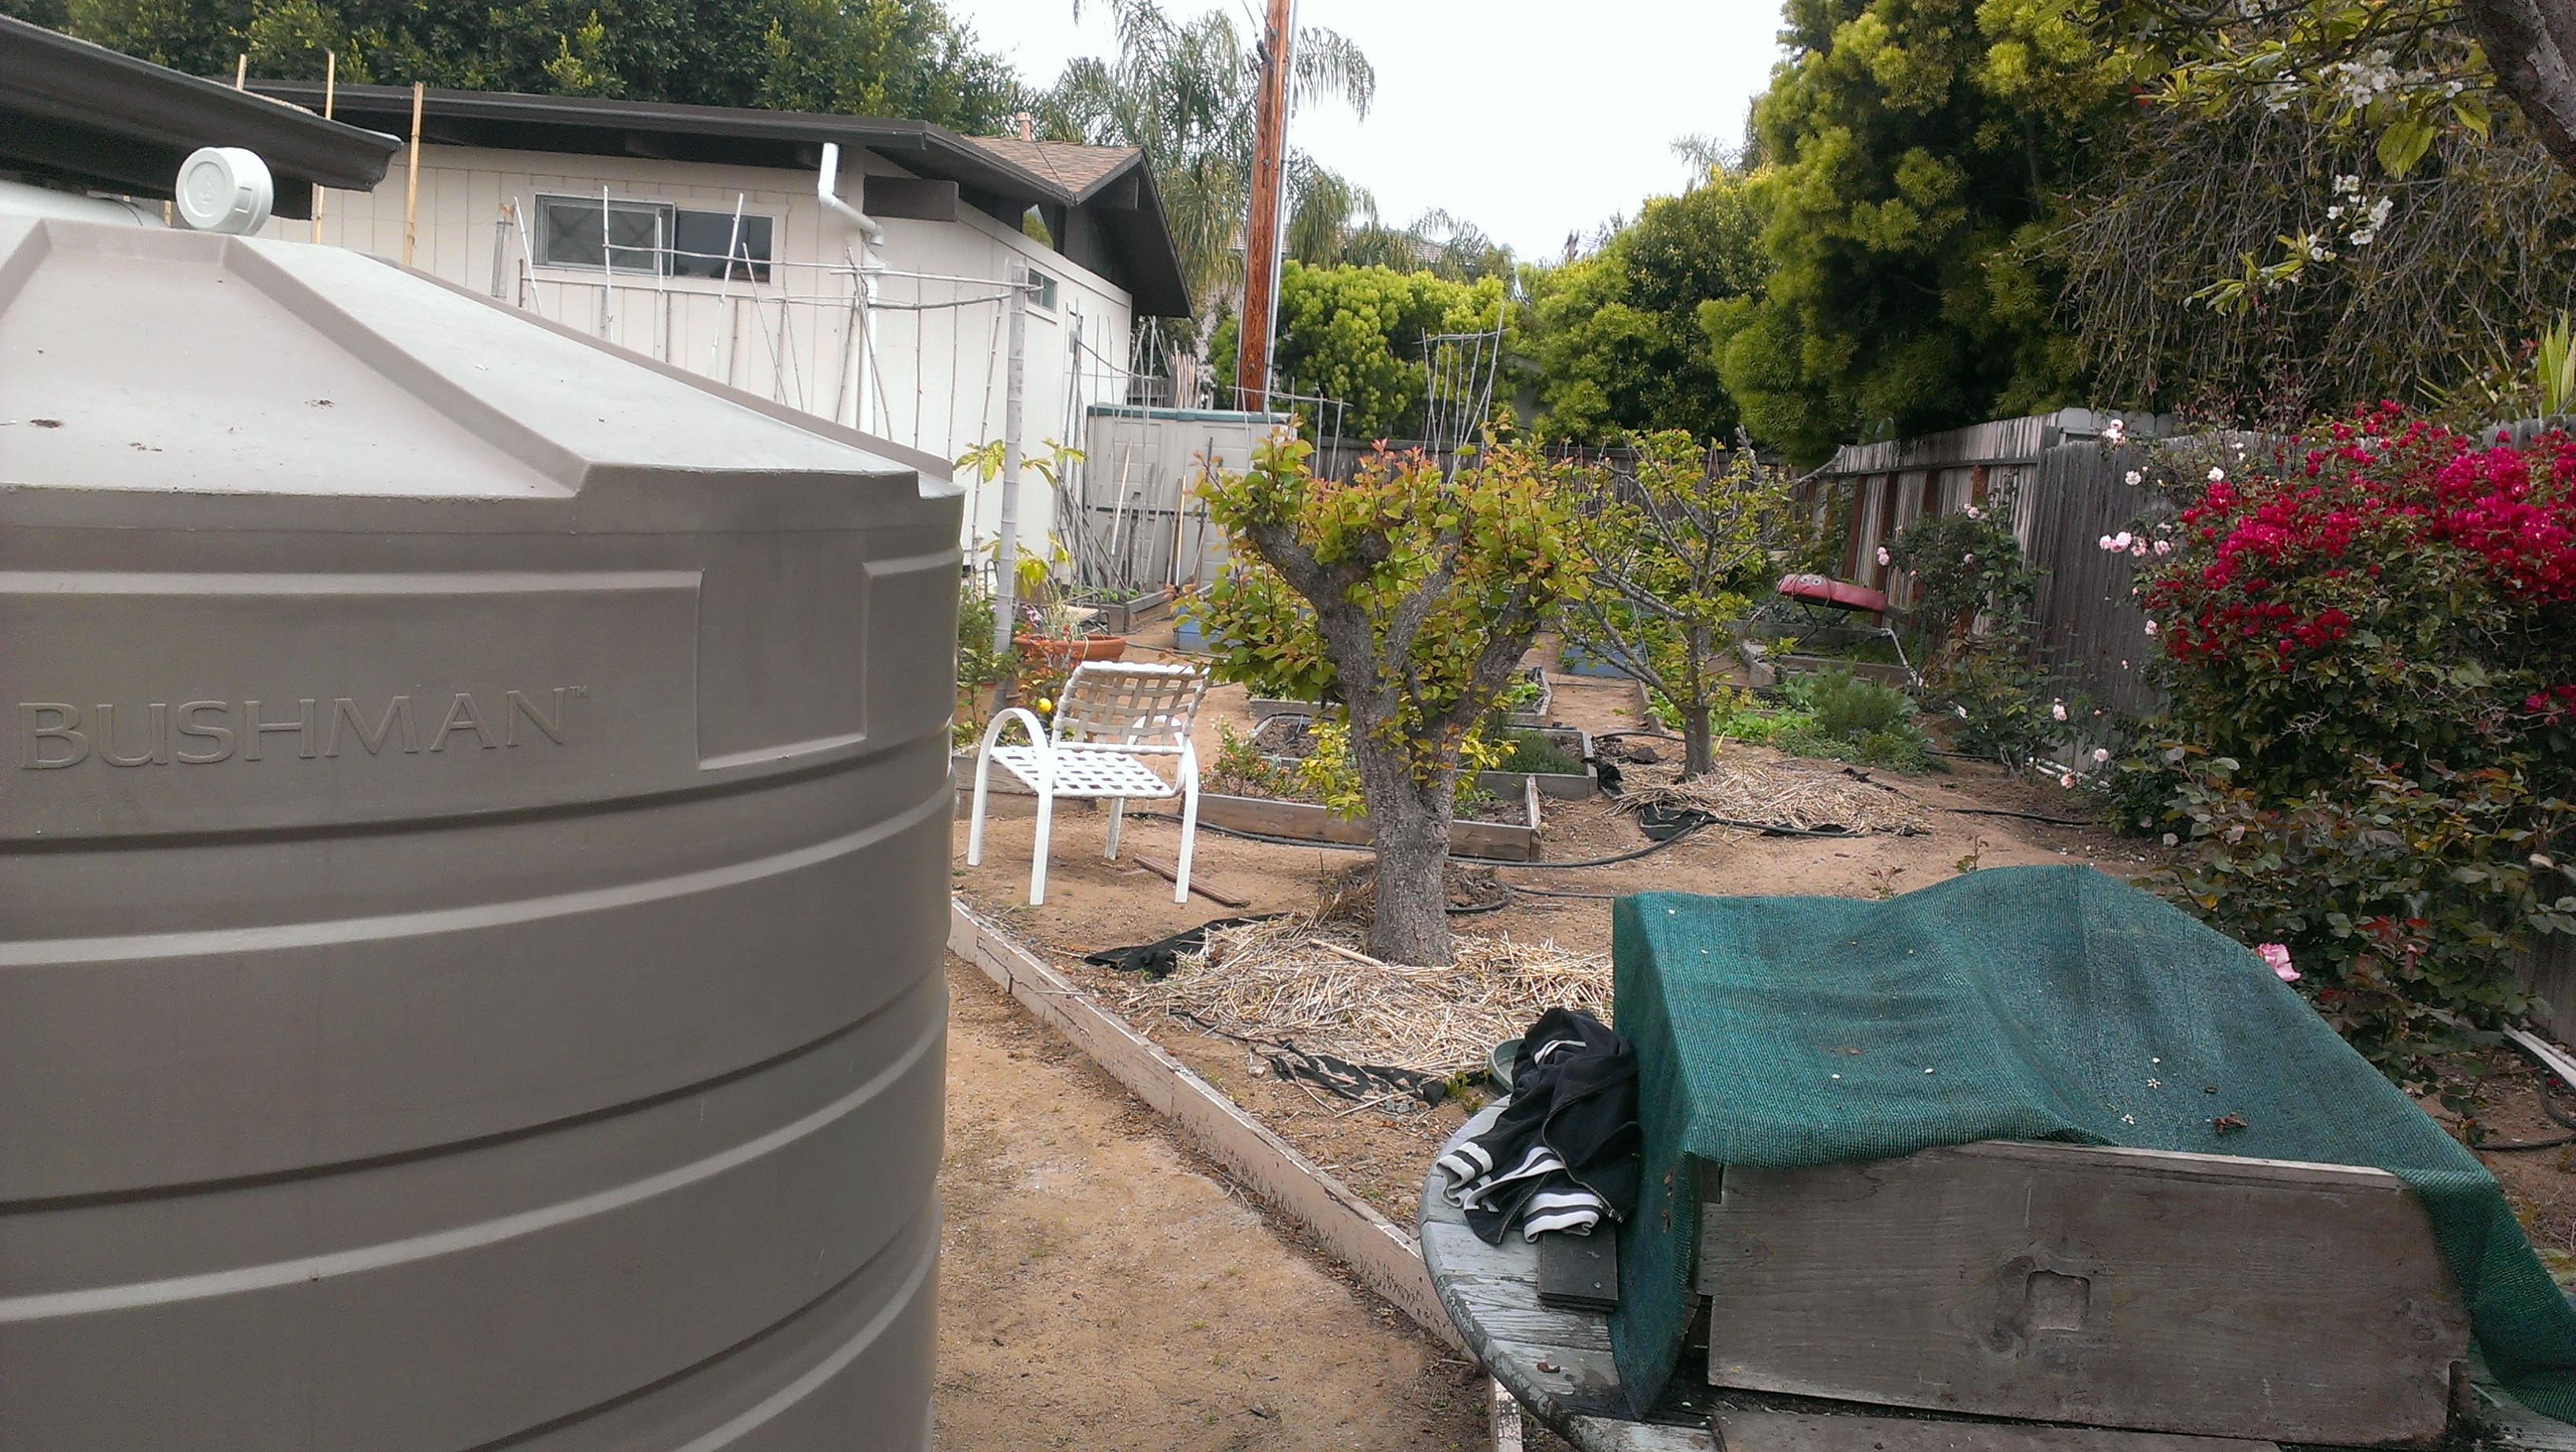 One of three 865 gallon tanks looks over the compost bin and into the garden. There is about three thousand feet of roof draining into these tanks making them overflow after 1.25 inches of rain.